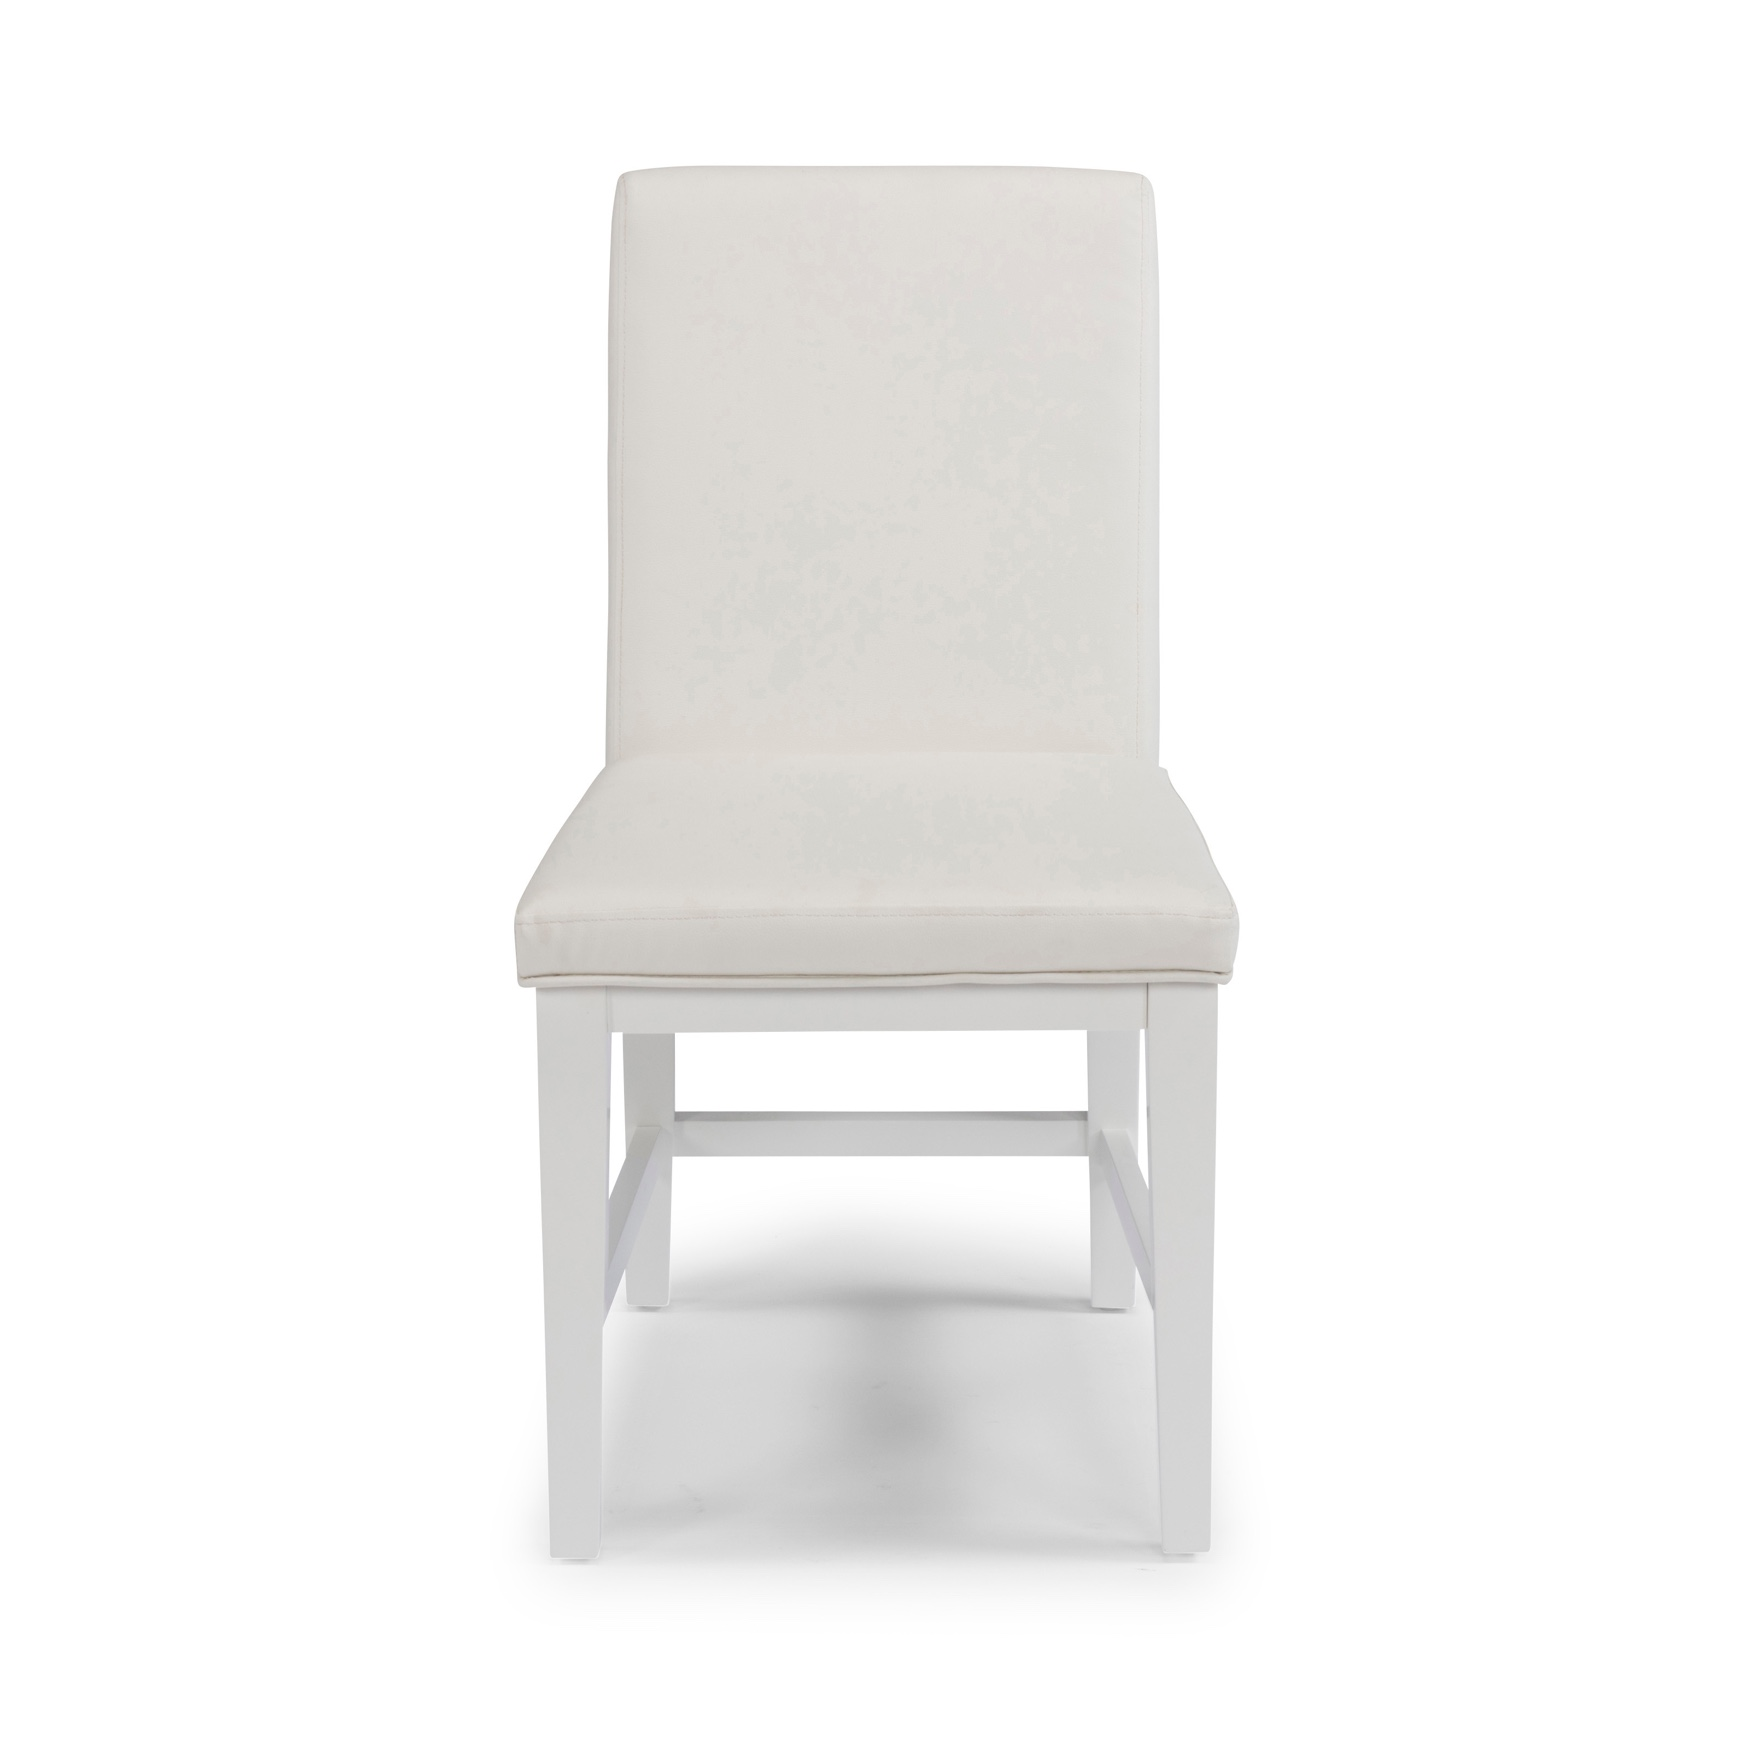 Linear Pair of Dining Chairs by Home Styles, WHITE